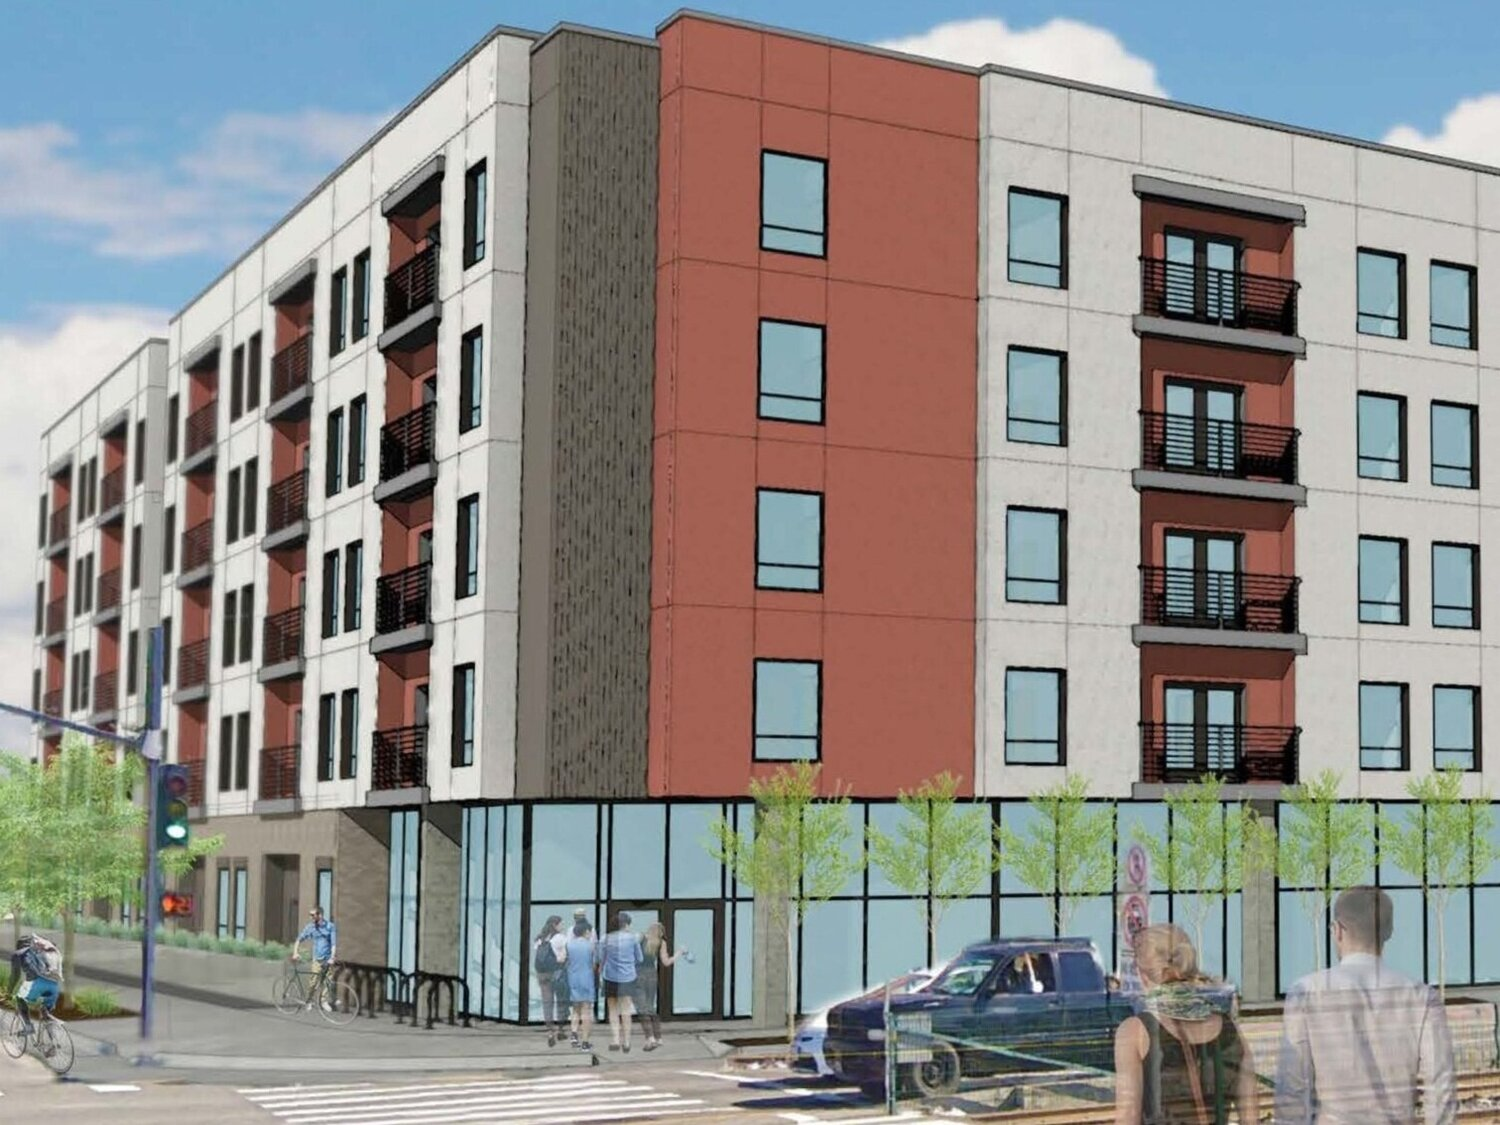 Expo Park Lofts - 3764 S Normandie Ave, Los Angeles, CARedevelopment land totaling 36,392 square feet near USC in entitlements for a five-story mixed-use project with 125 units plus ground-floor retail/commercial space